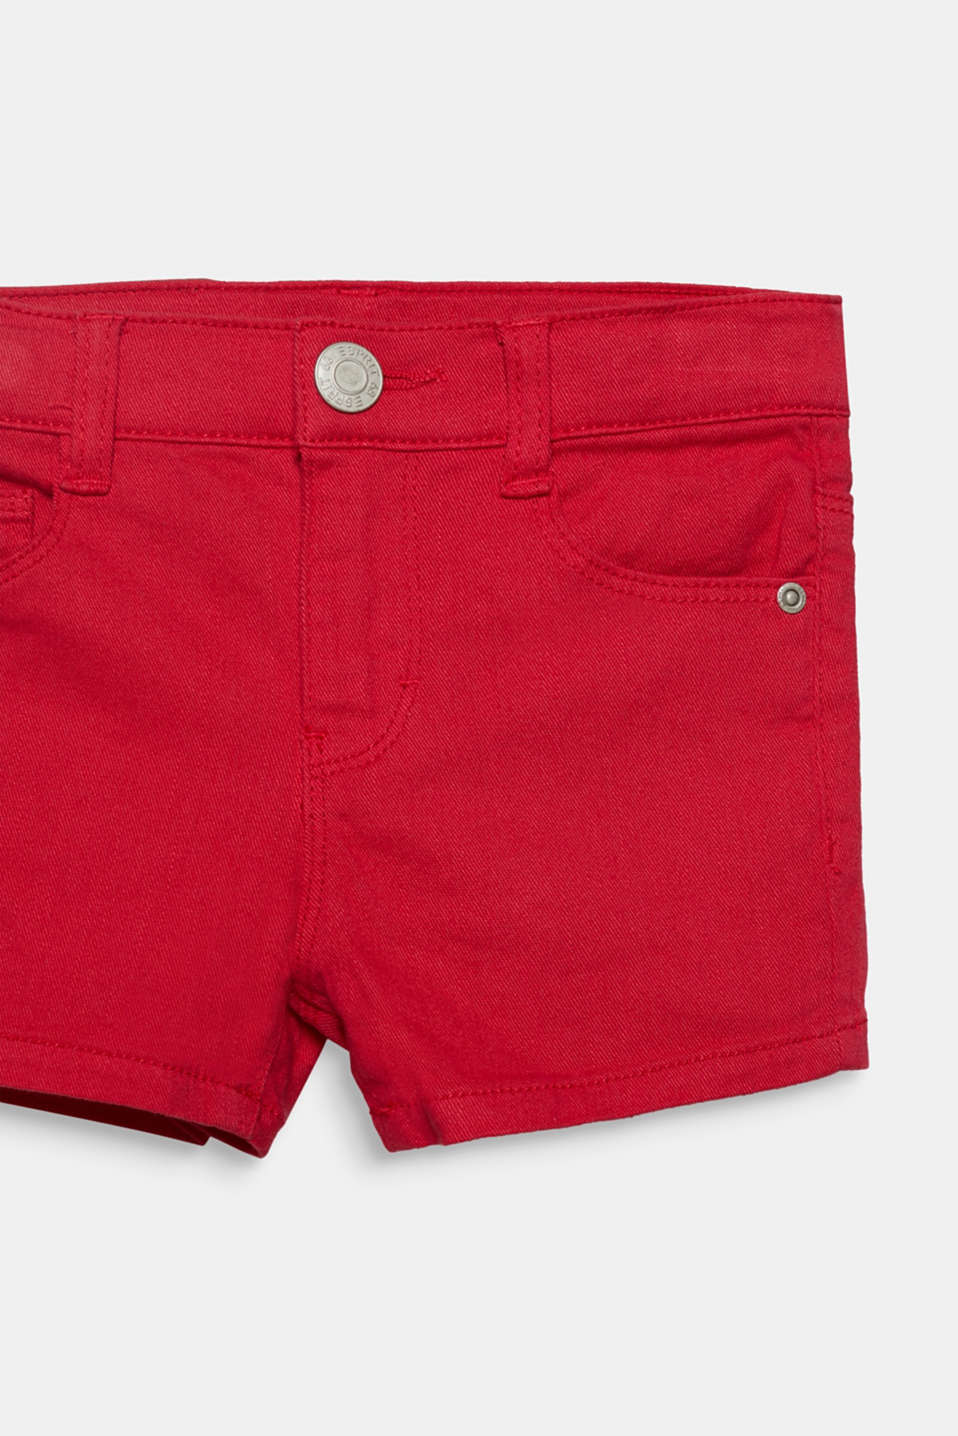 Coloured denim shorts with an adjustable waistband, RASPBERRY, detail image number 2